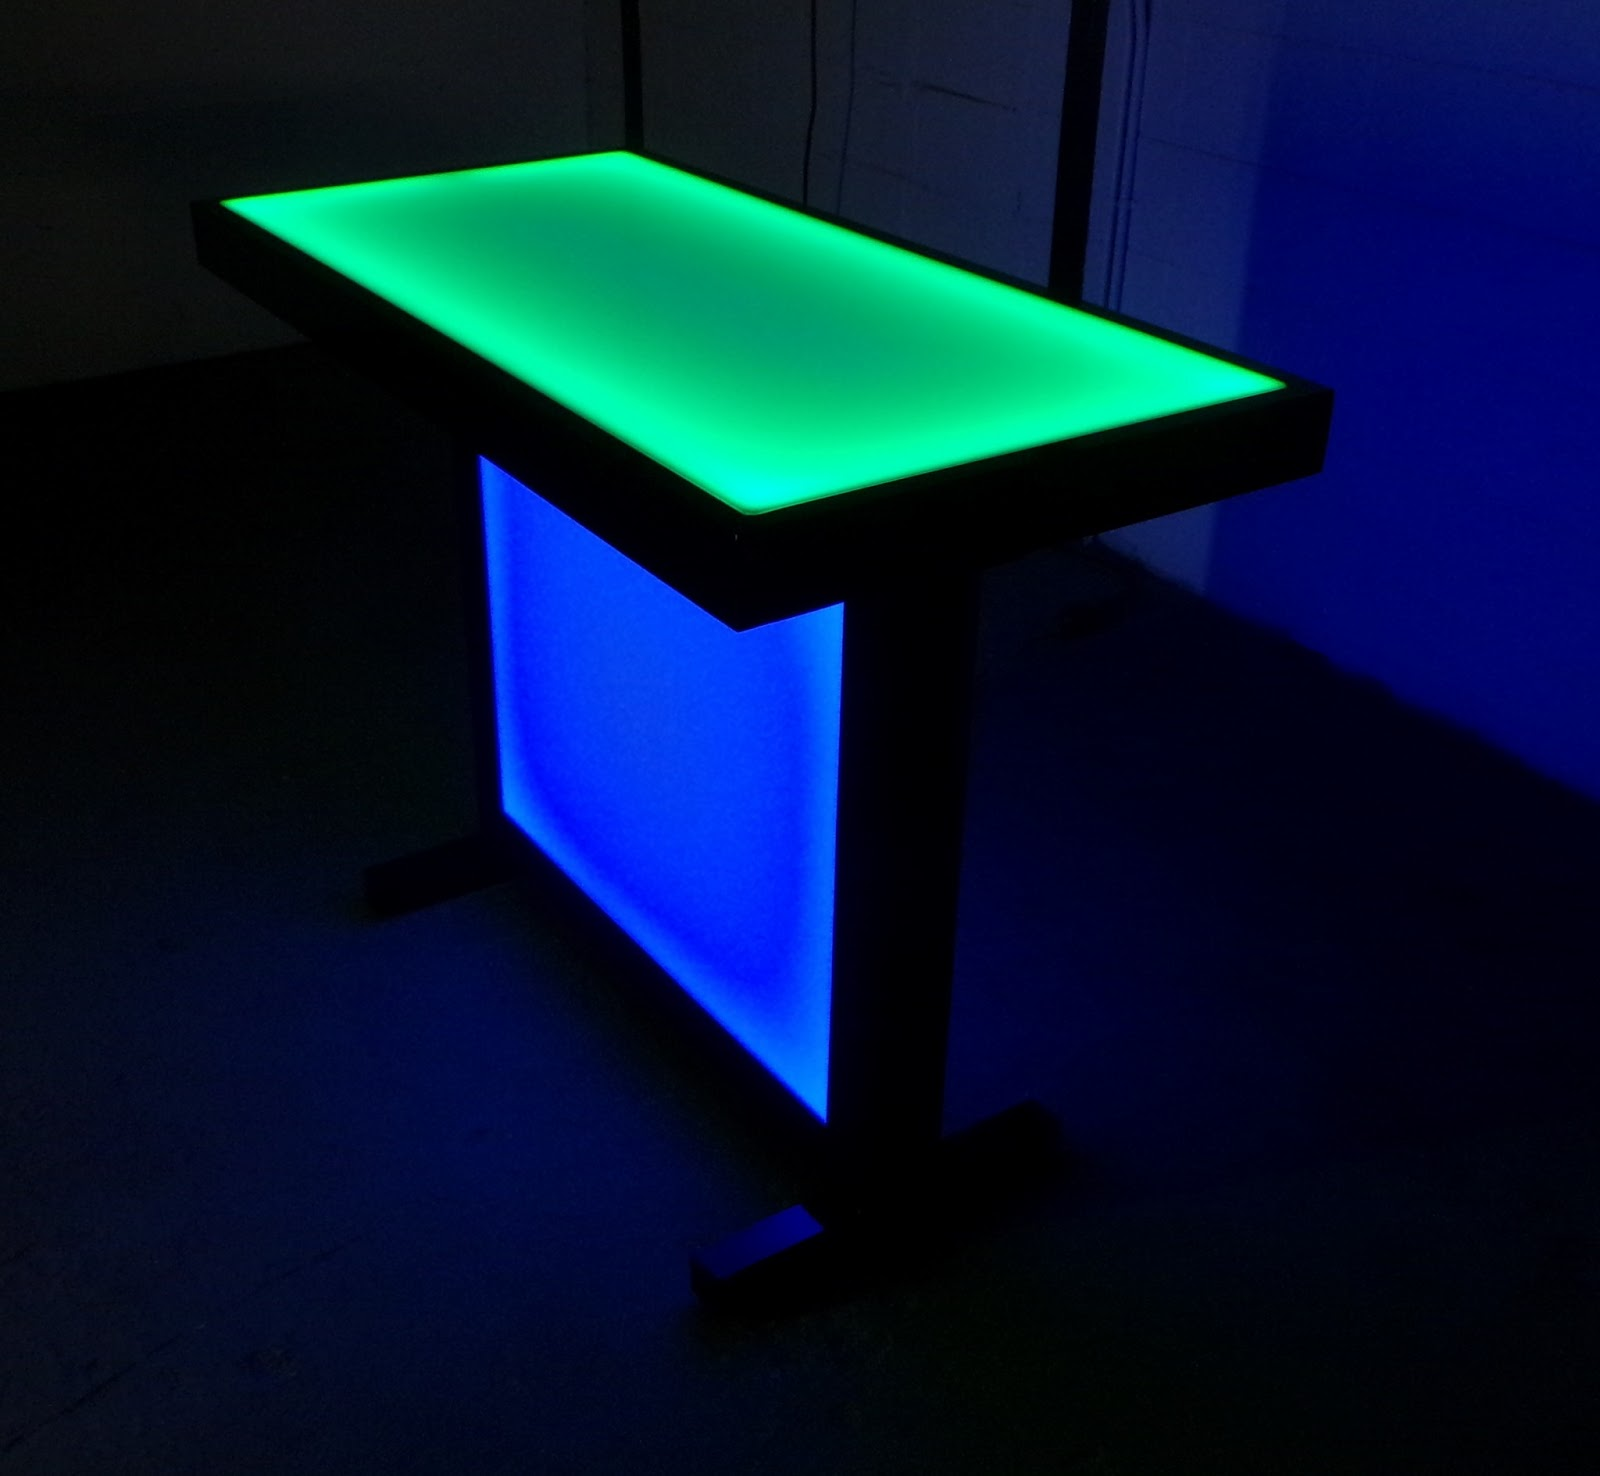 BarChefs: The party table that lights up!